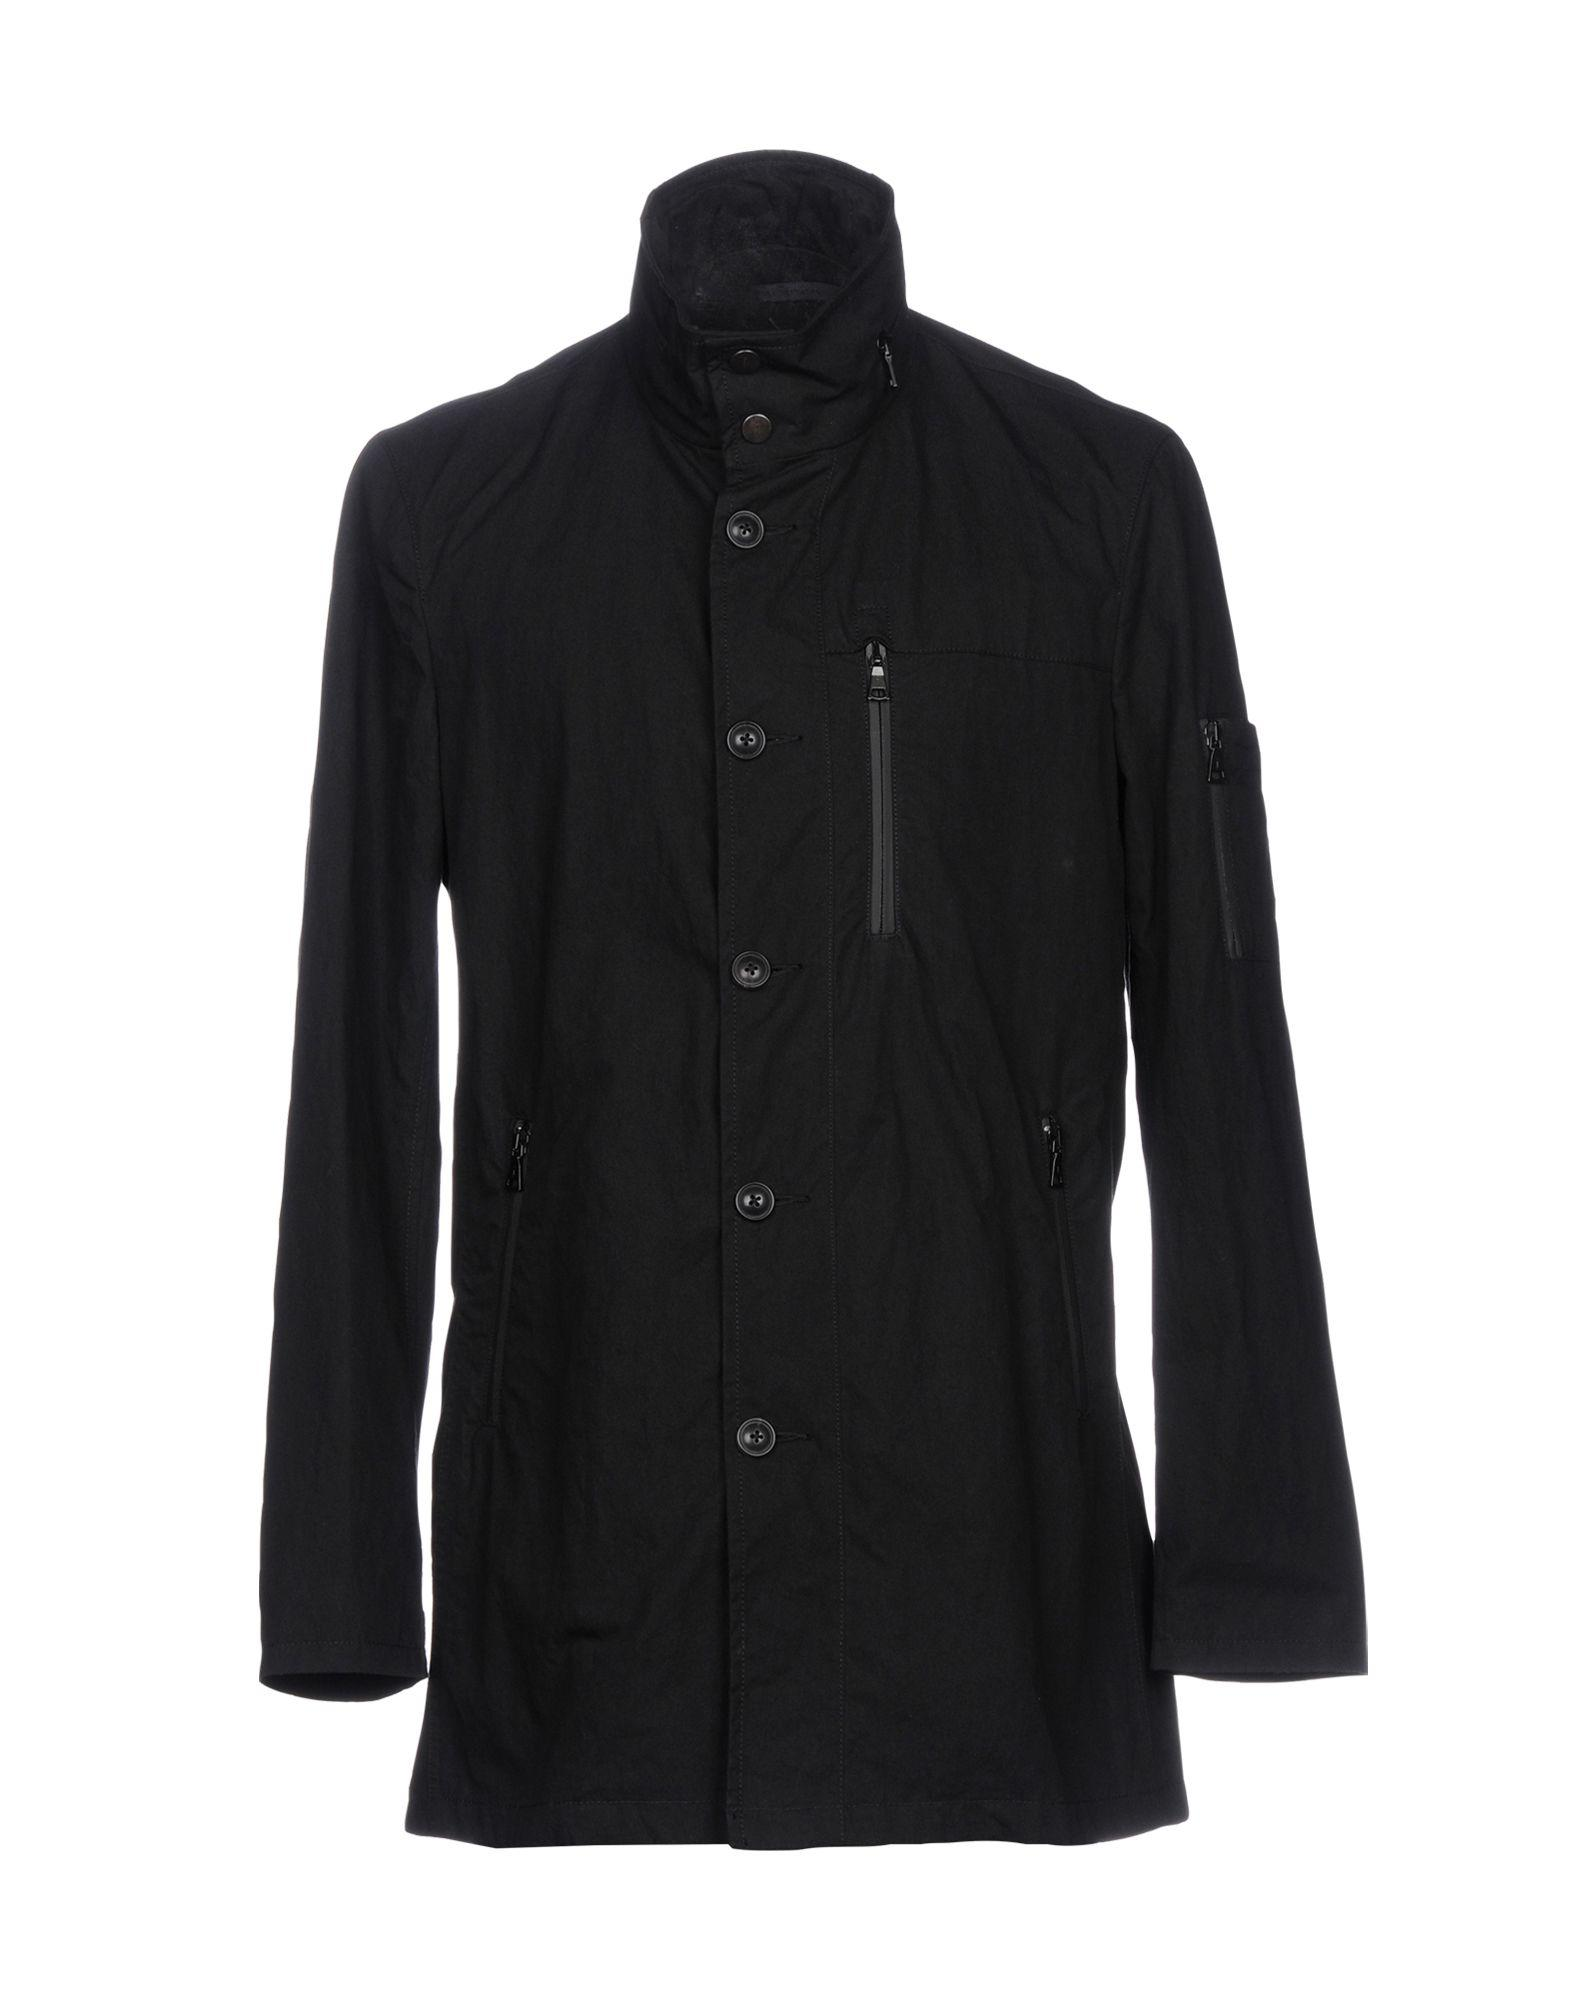 John Varvatos Jacket In Black